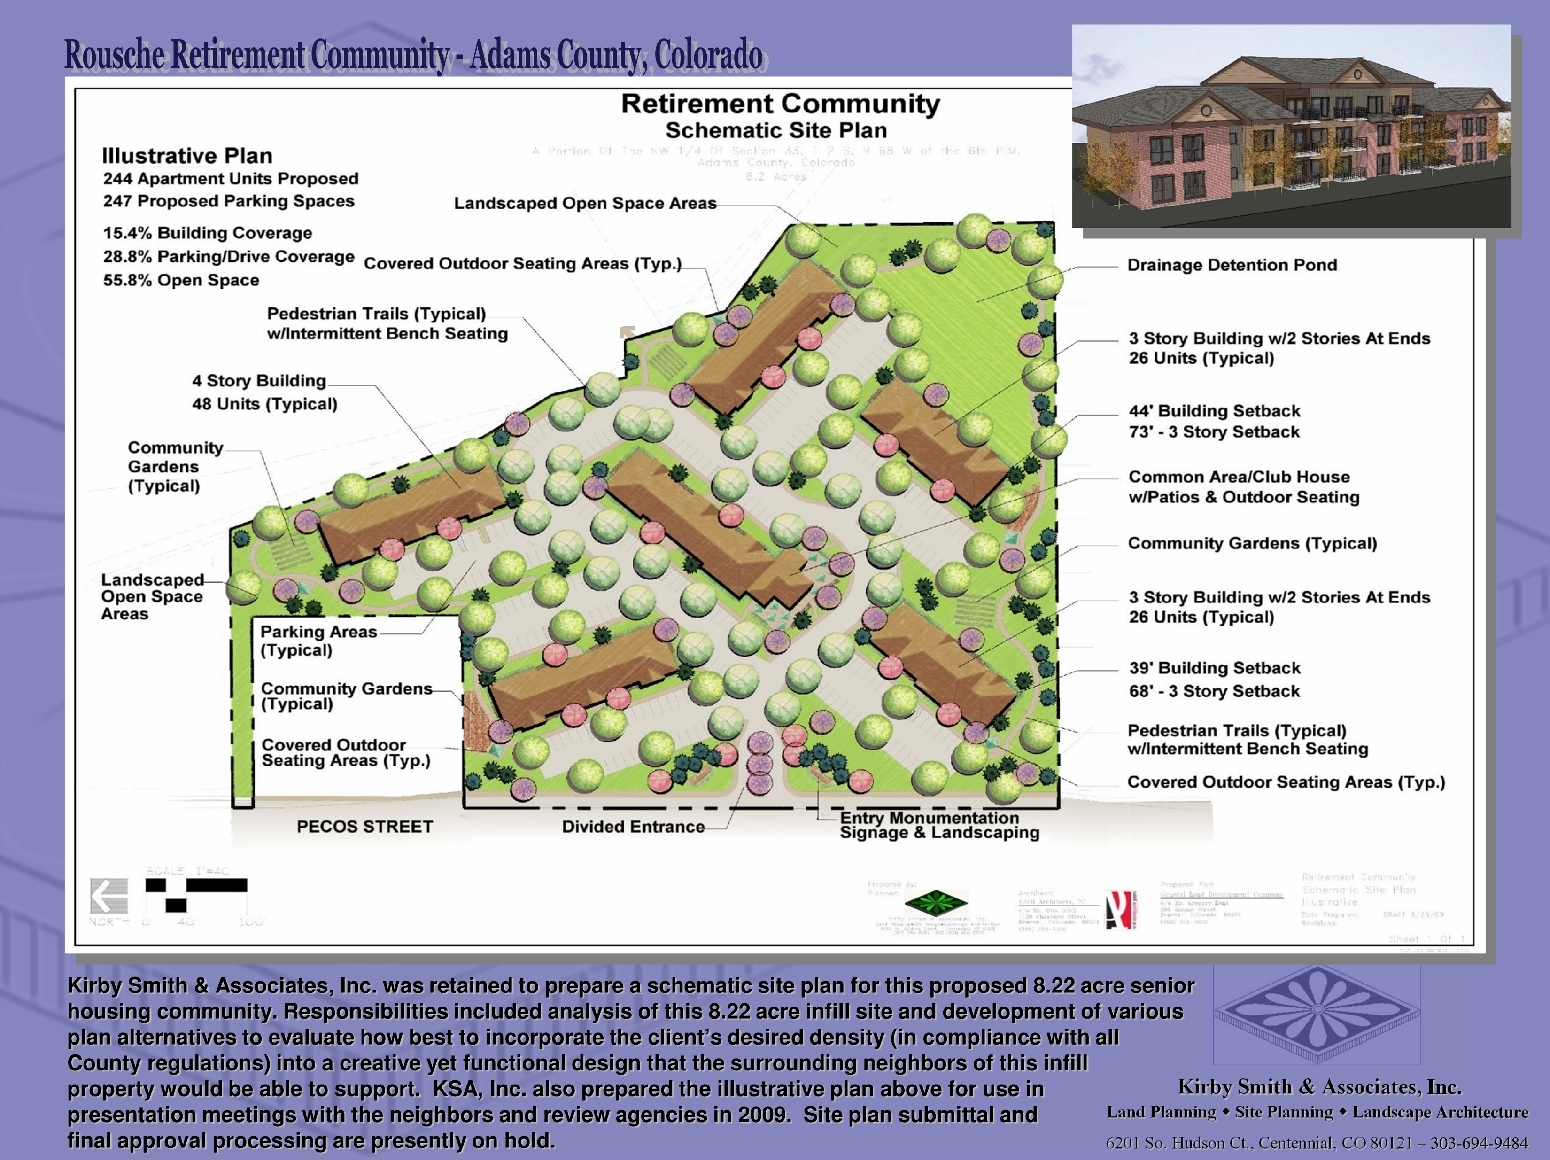 Preparation of a schematic site plan for a proposed senior housing community. Responsibilities included analysis of this 8.22 acre infill site and prepare various plan alternatives to evaluate the client's desired density (in compliance with County regulations) into a creative yet functional design that the adjacent neighbors of this infill property would support.  KSA, Inc. also prepared the illustrative plan above for presentation to neighbors & review agencies.